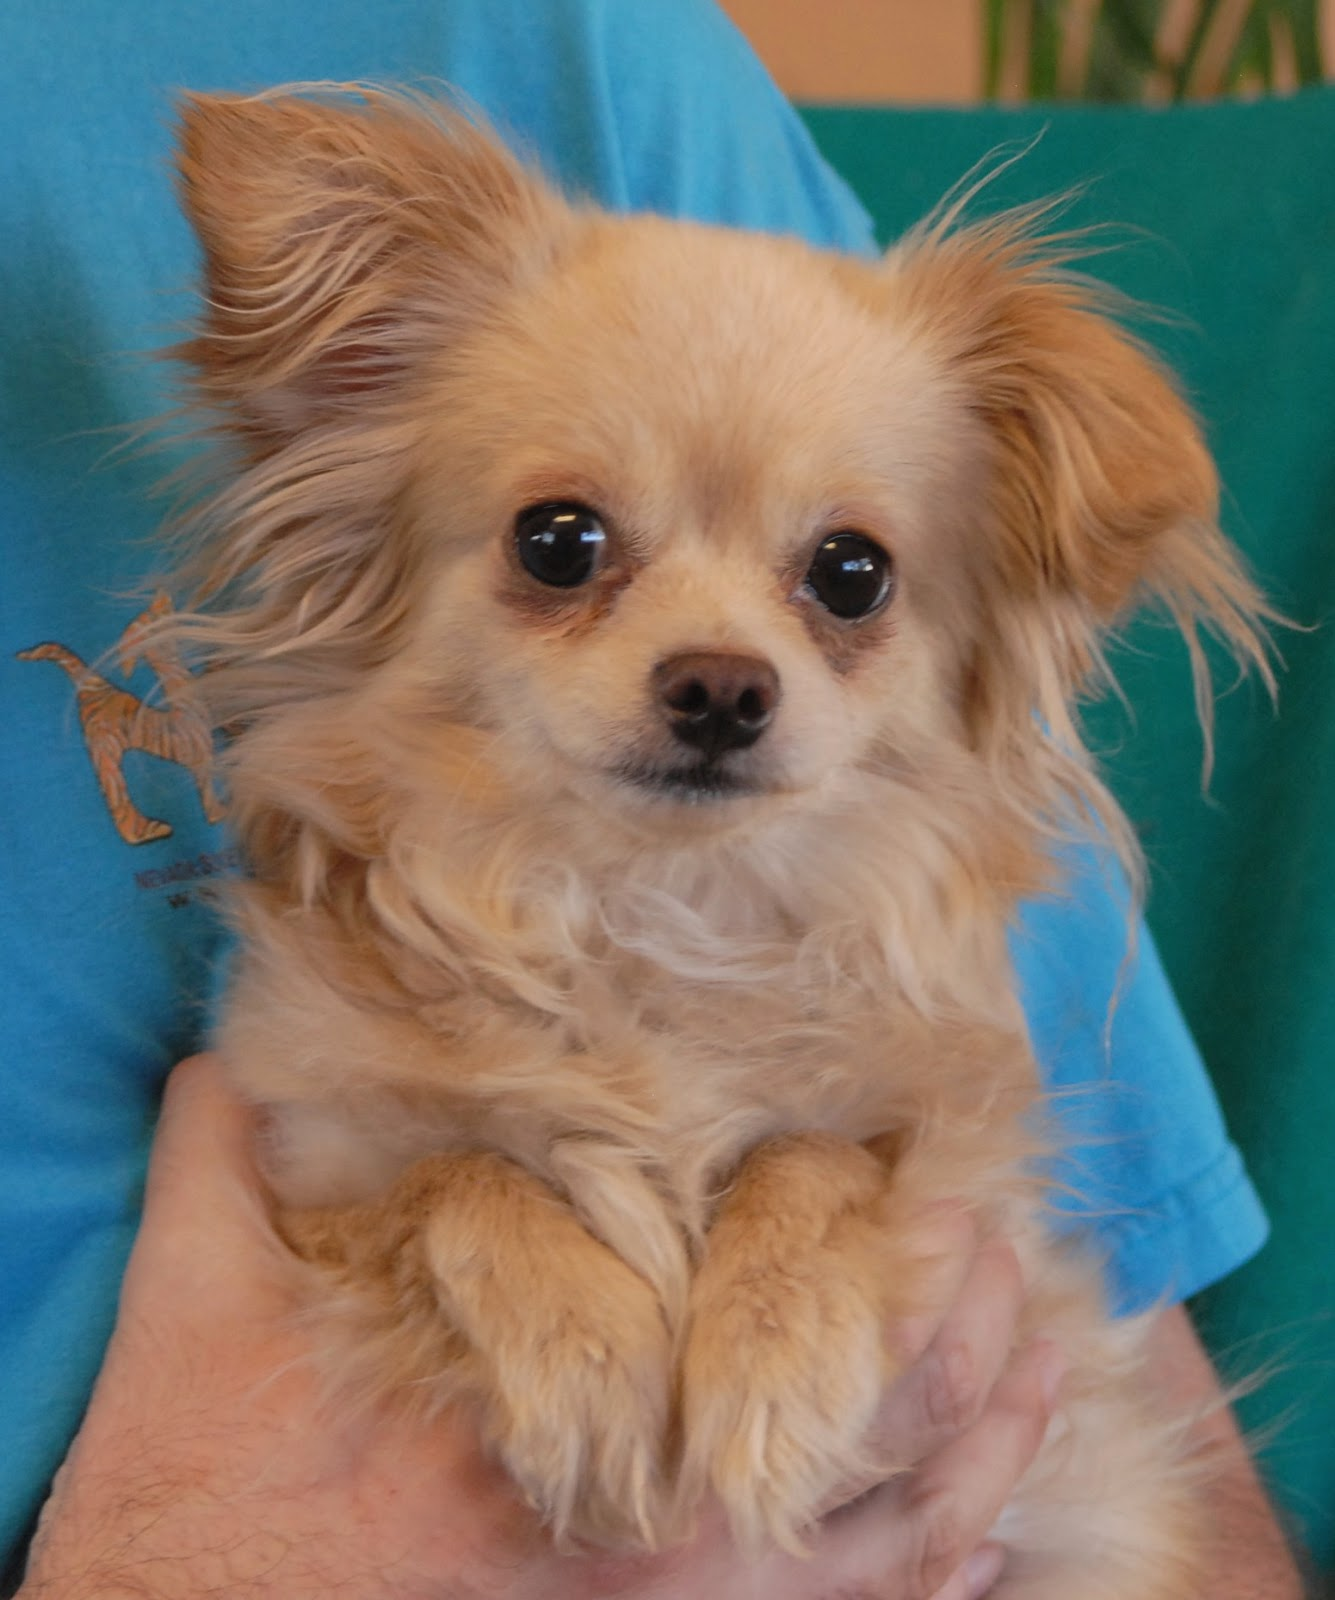 Near Me Fluffy Small Dog Adoptions